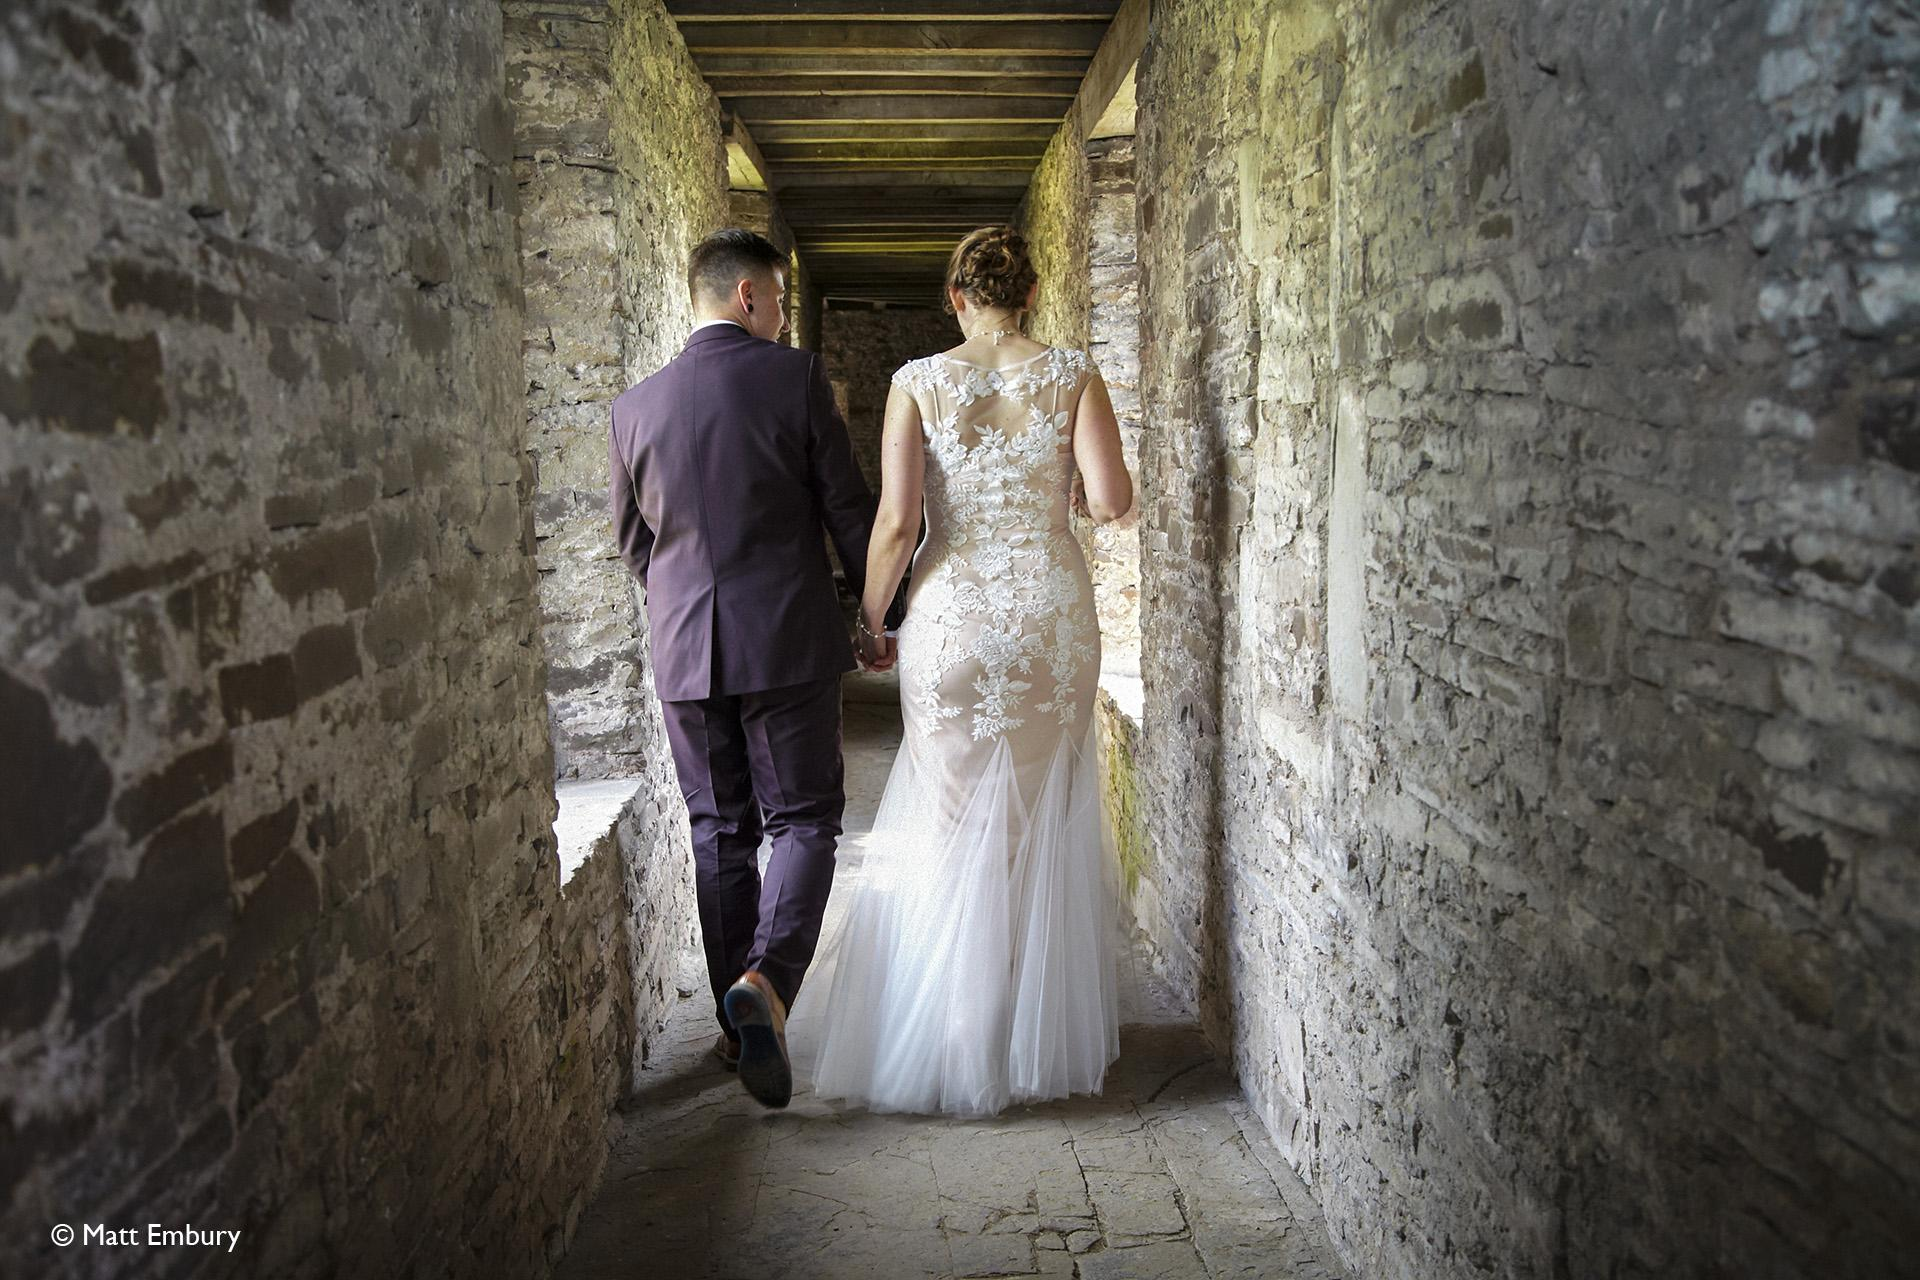 Priodas yn Llys Tretŵr/Wedding at Tretower Court